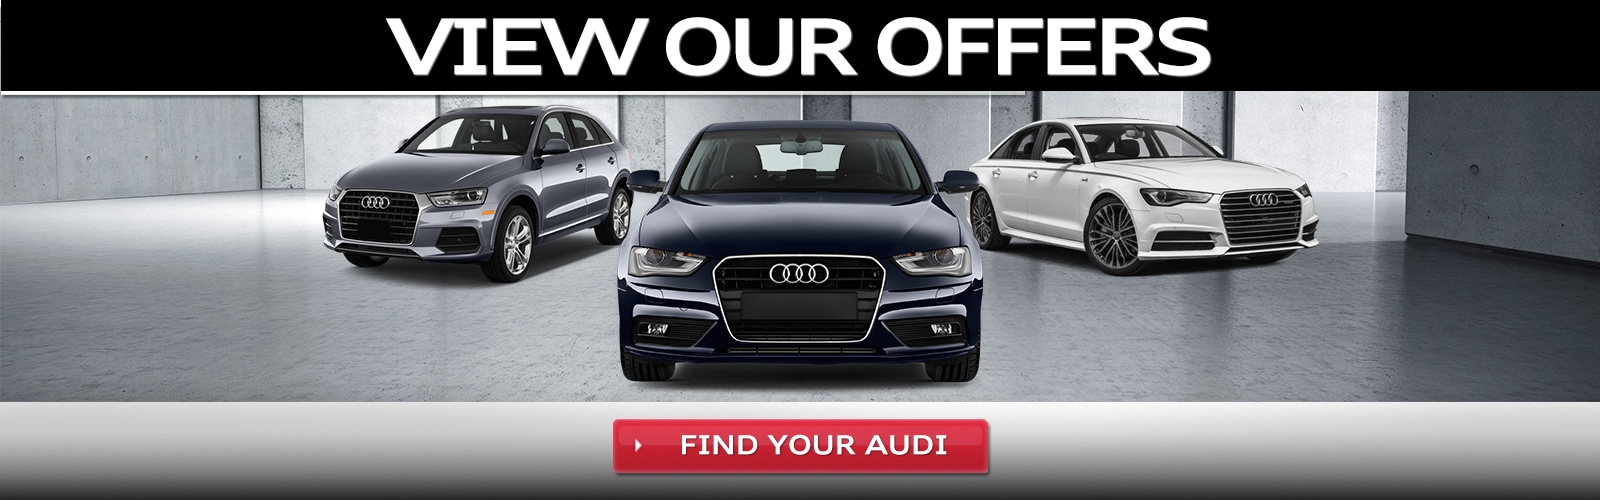 Welcome To Audi Bethesda Chevy Chase Audi Dealership - Audi official website